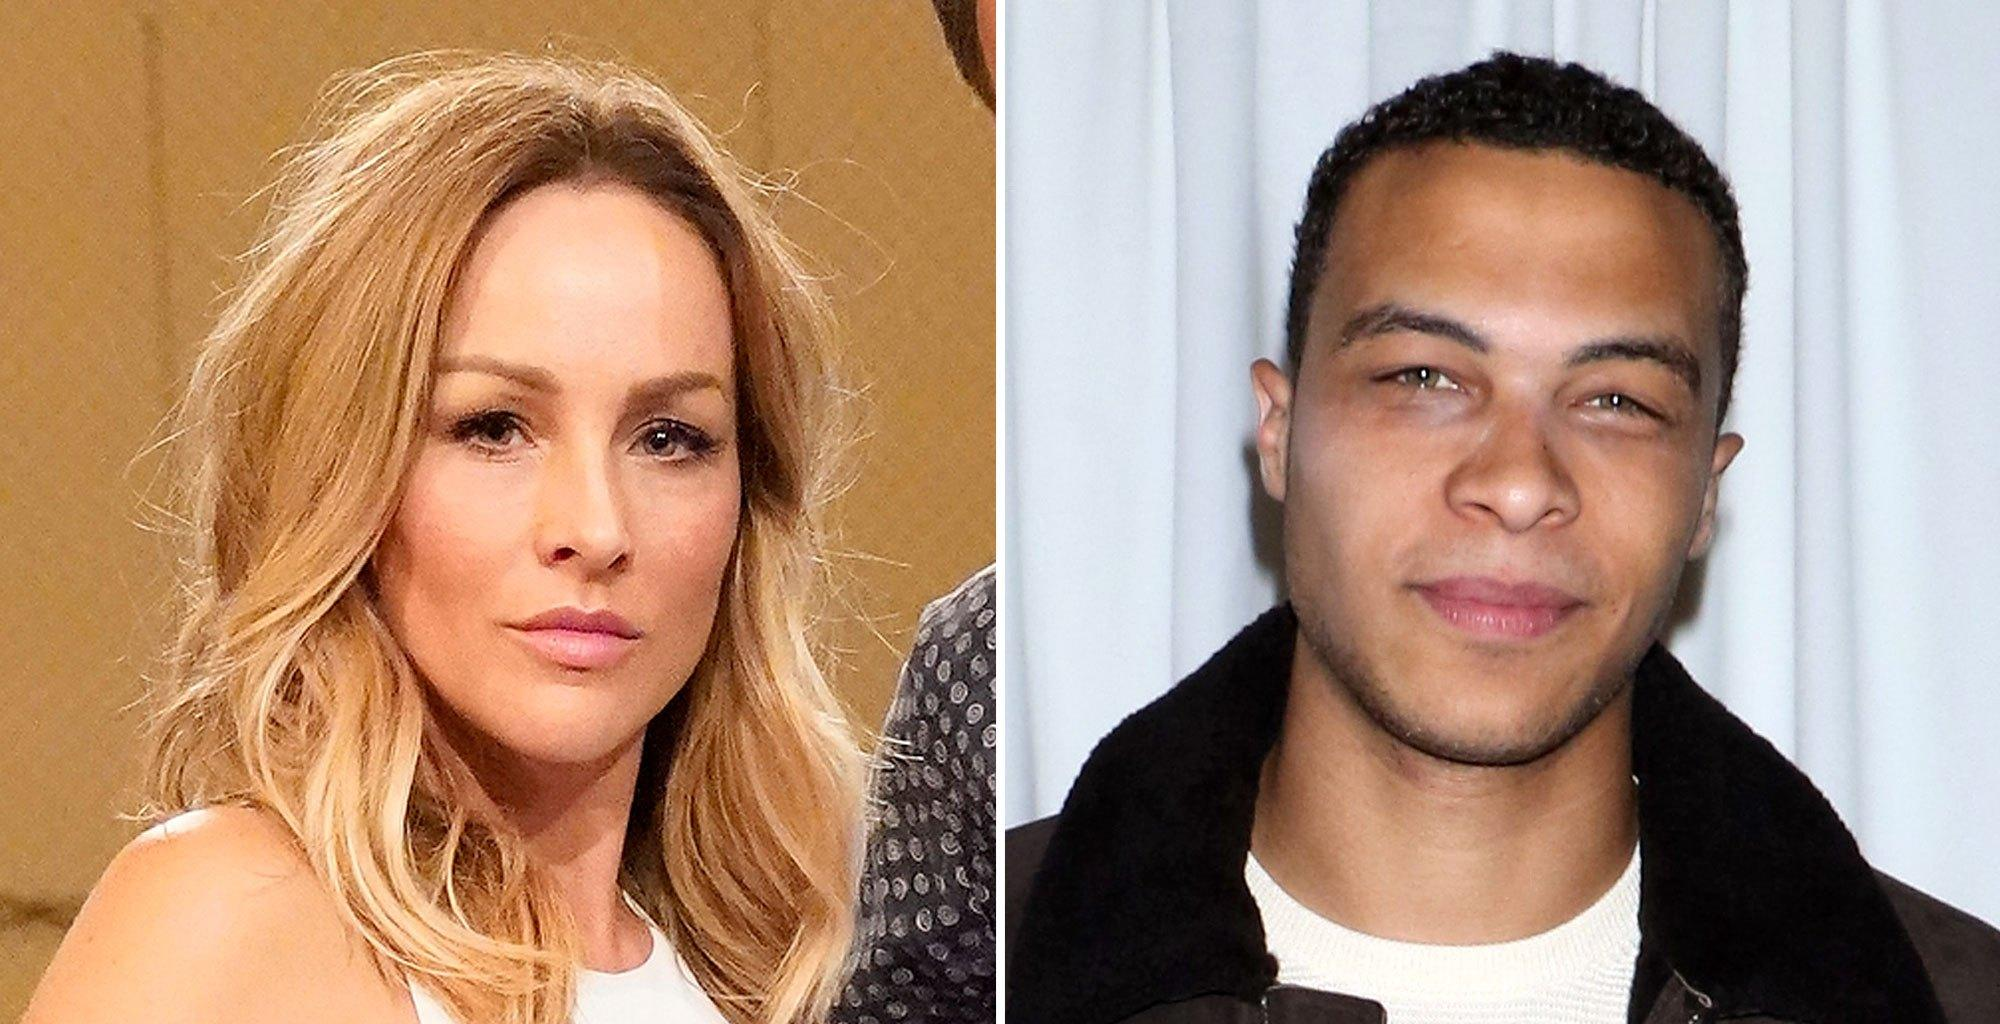 Clare Crawley Breaks Her Silence On The Dale Moss Breakup - Says She Was Blindsided!